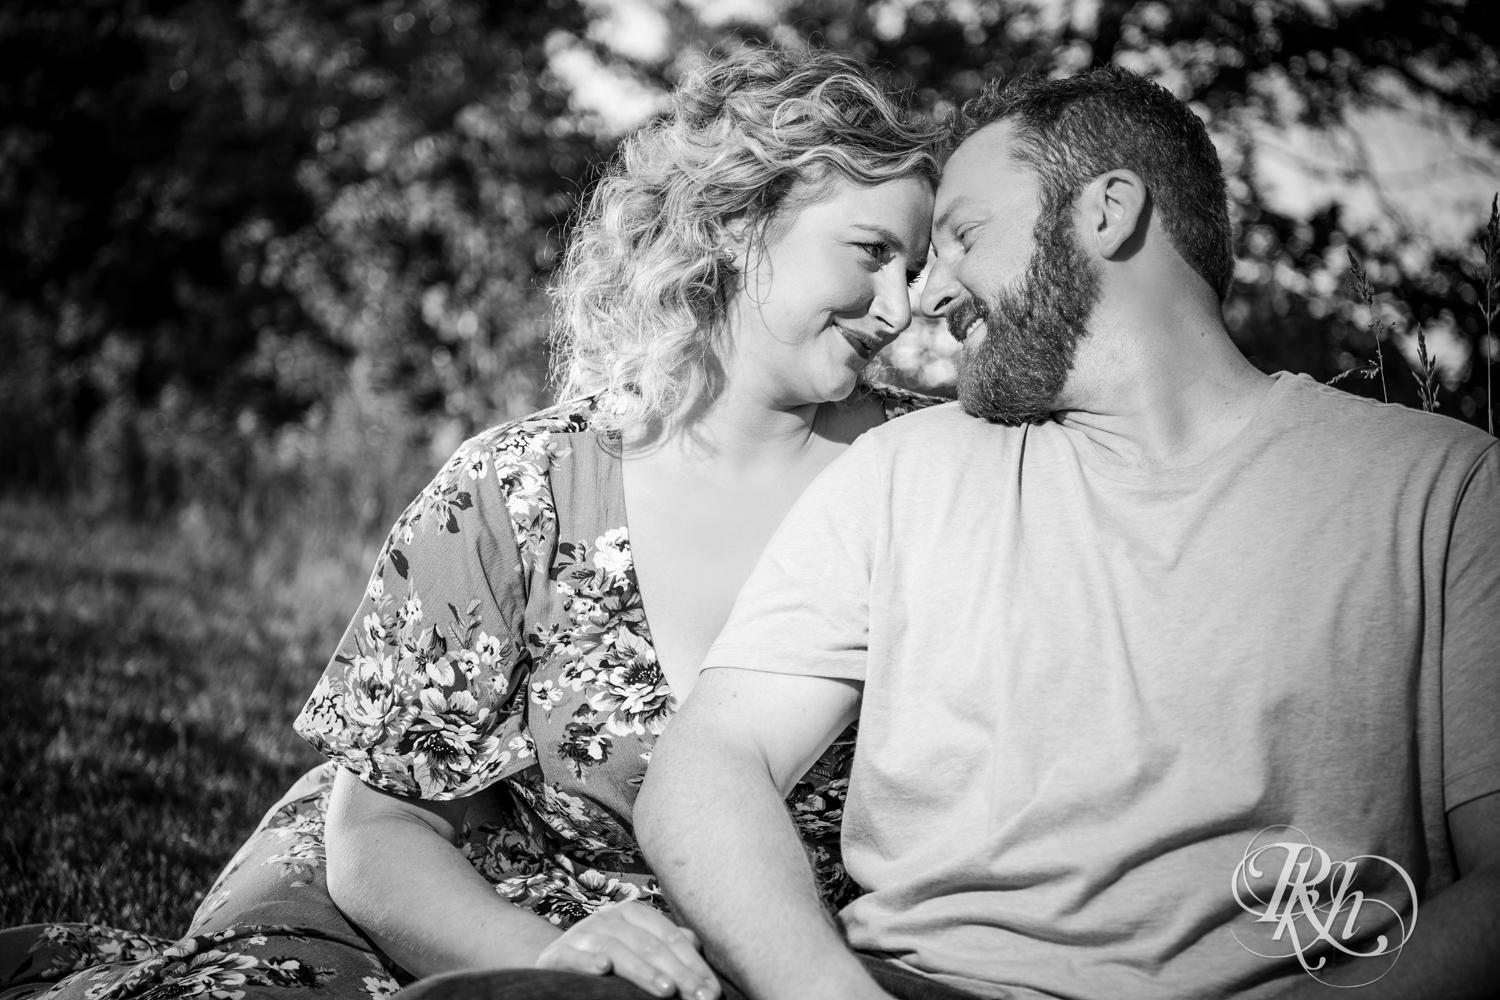 Constance & Josh - Minnesota Engagement Photography - Lebanon Hills Regional Park - RKH Images - Blog (7 of 18).jpg